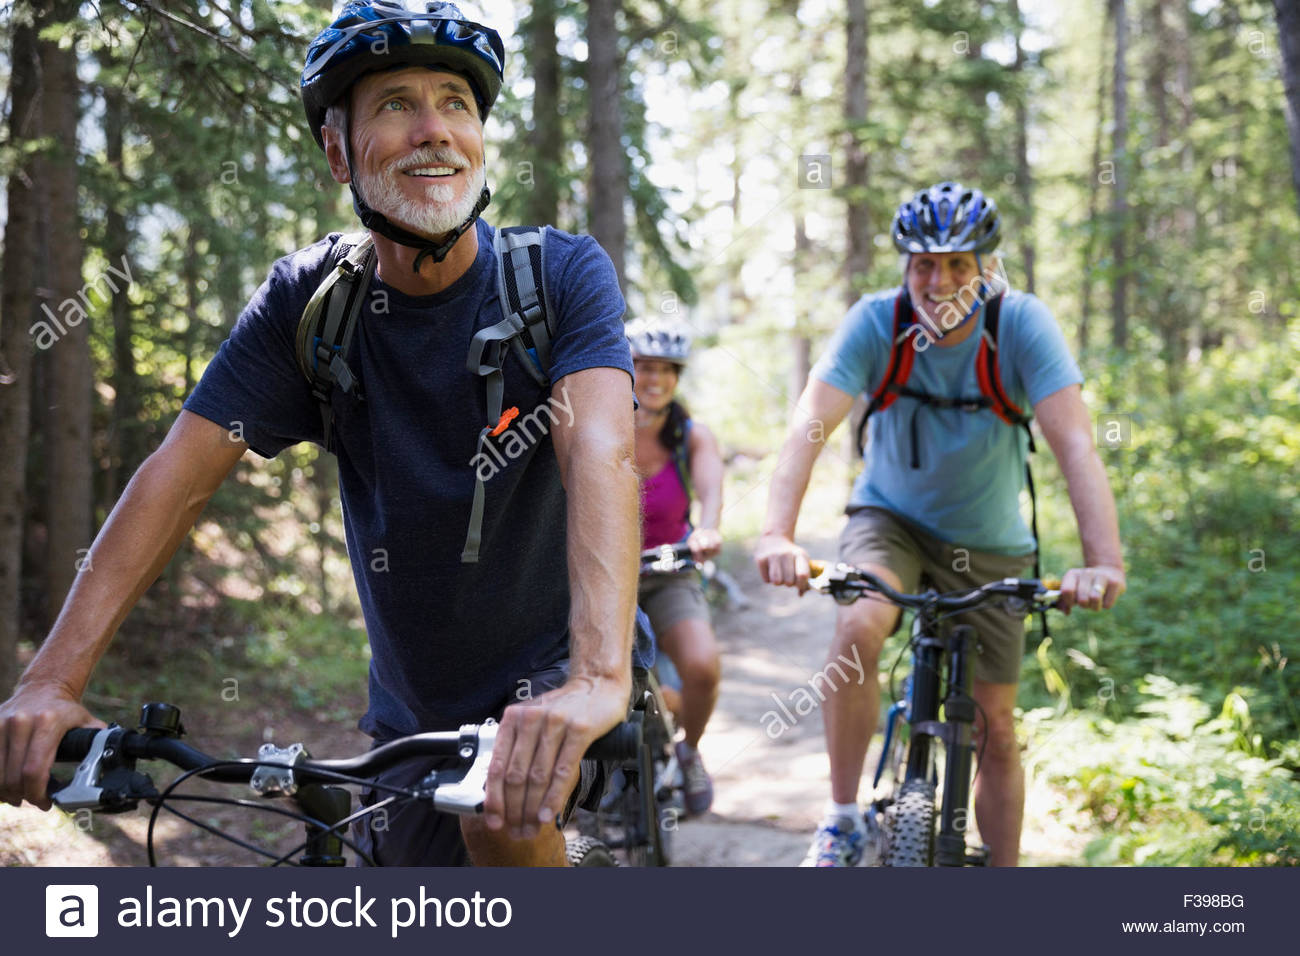 Smiling senior man mountain biking in woods - Stock Image